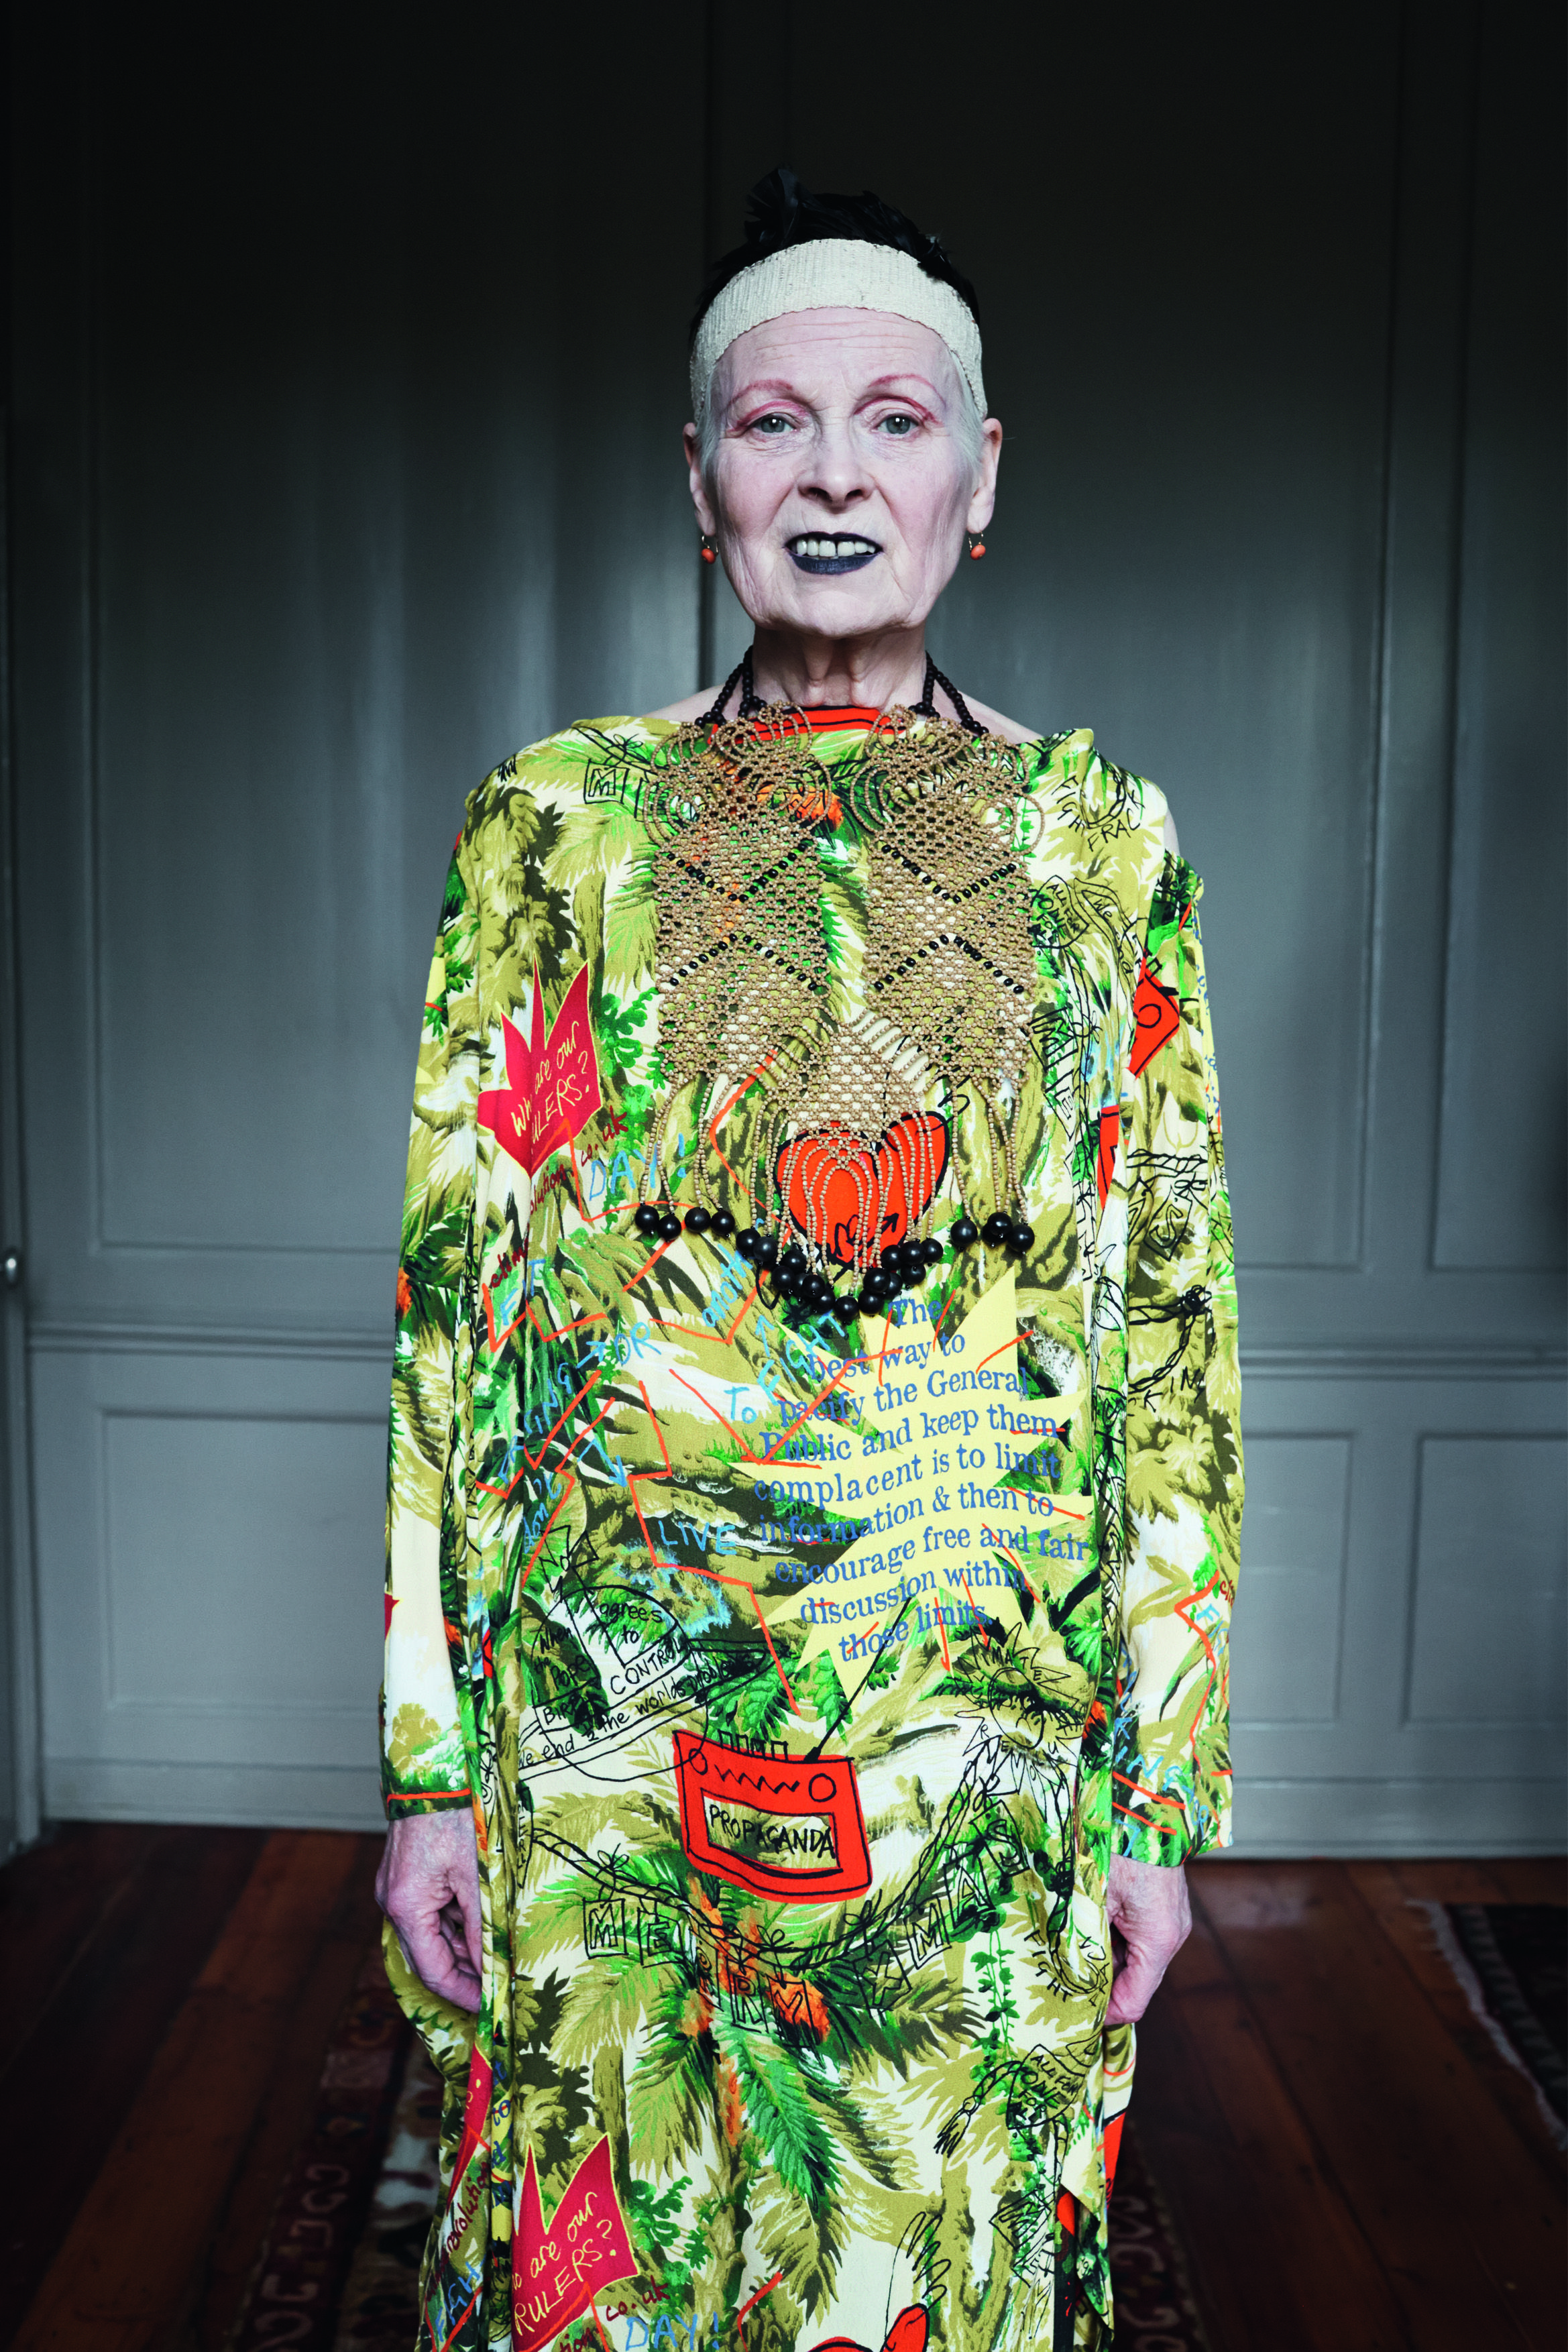 Autumn Winter 2014 15 Campaign Featuring Vivienne Westwood And Photographed By Juergen Teller Vivienne Westwood Fashion Vivienne Westwood Fashion